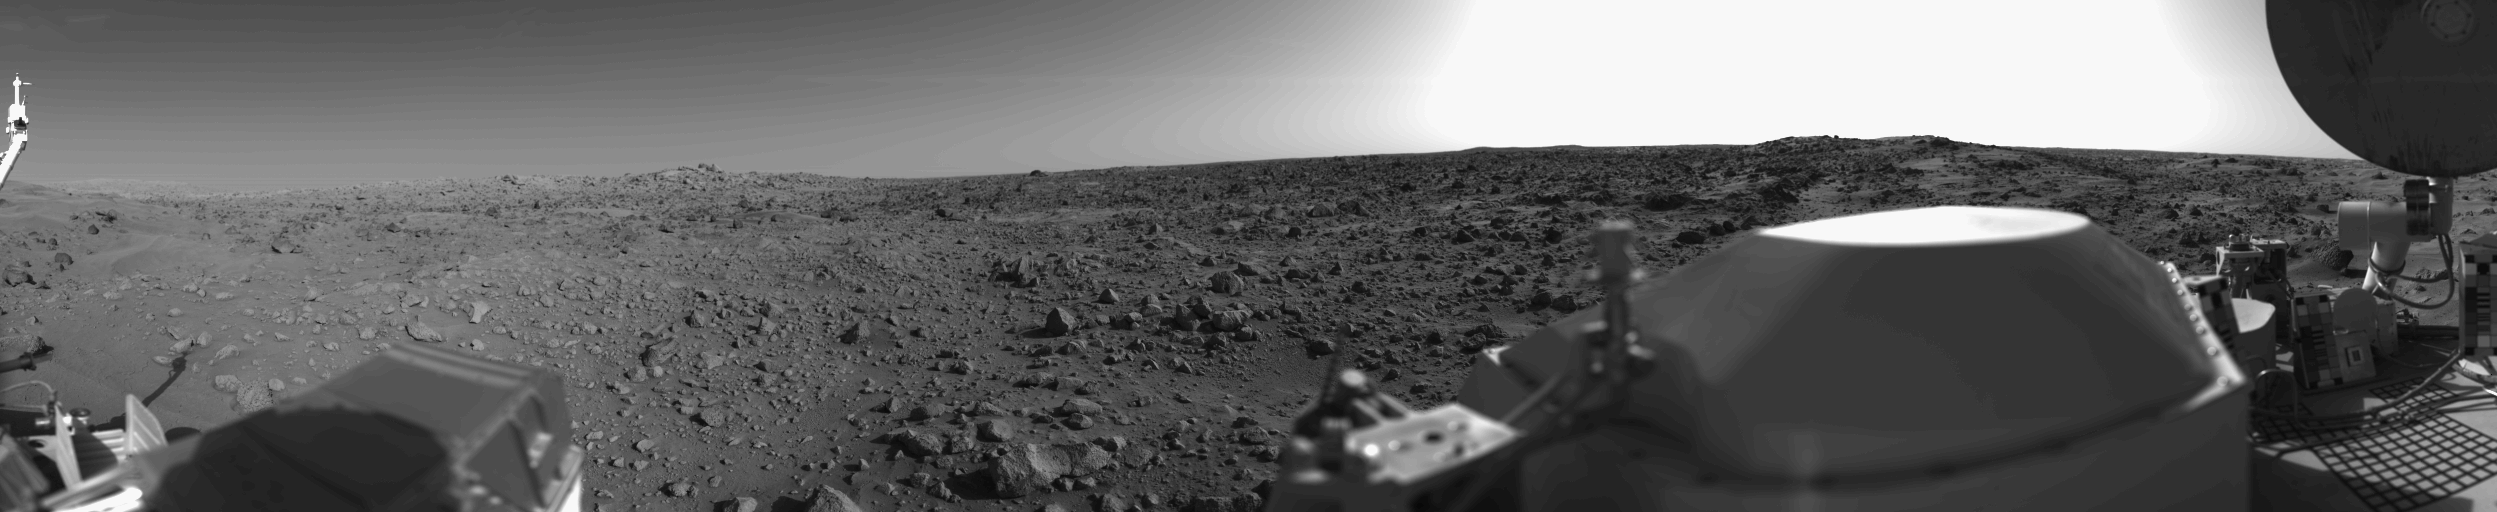 "First panoramic view by  Viking 1  from the surface of Mars. Captured on July 20, 1976  By ""Roel van der Hoorn (Van der Hoorn)"" - Own work based on images in the NASA Viking image archive., Public Domain, https://commons.wikimedia.org/w/index.php?curid=2407343"